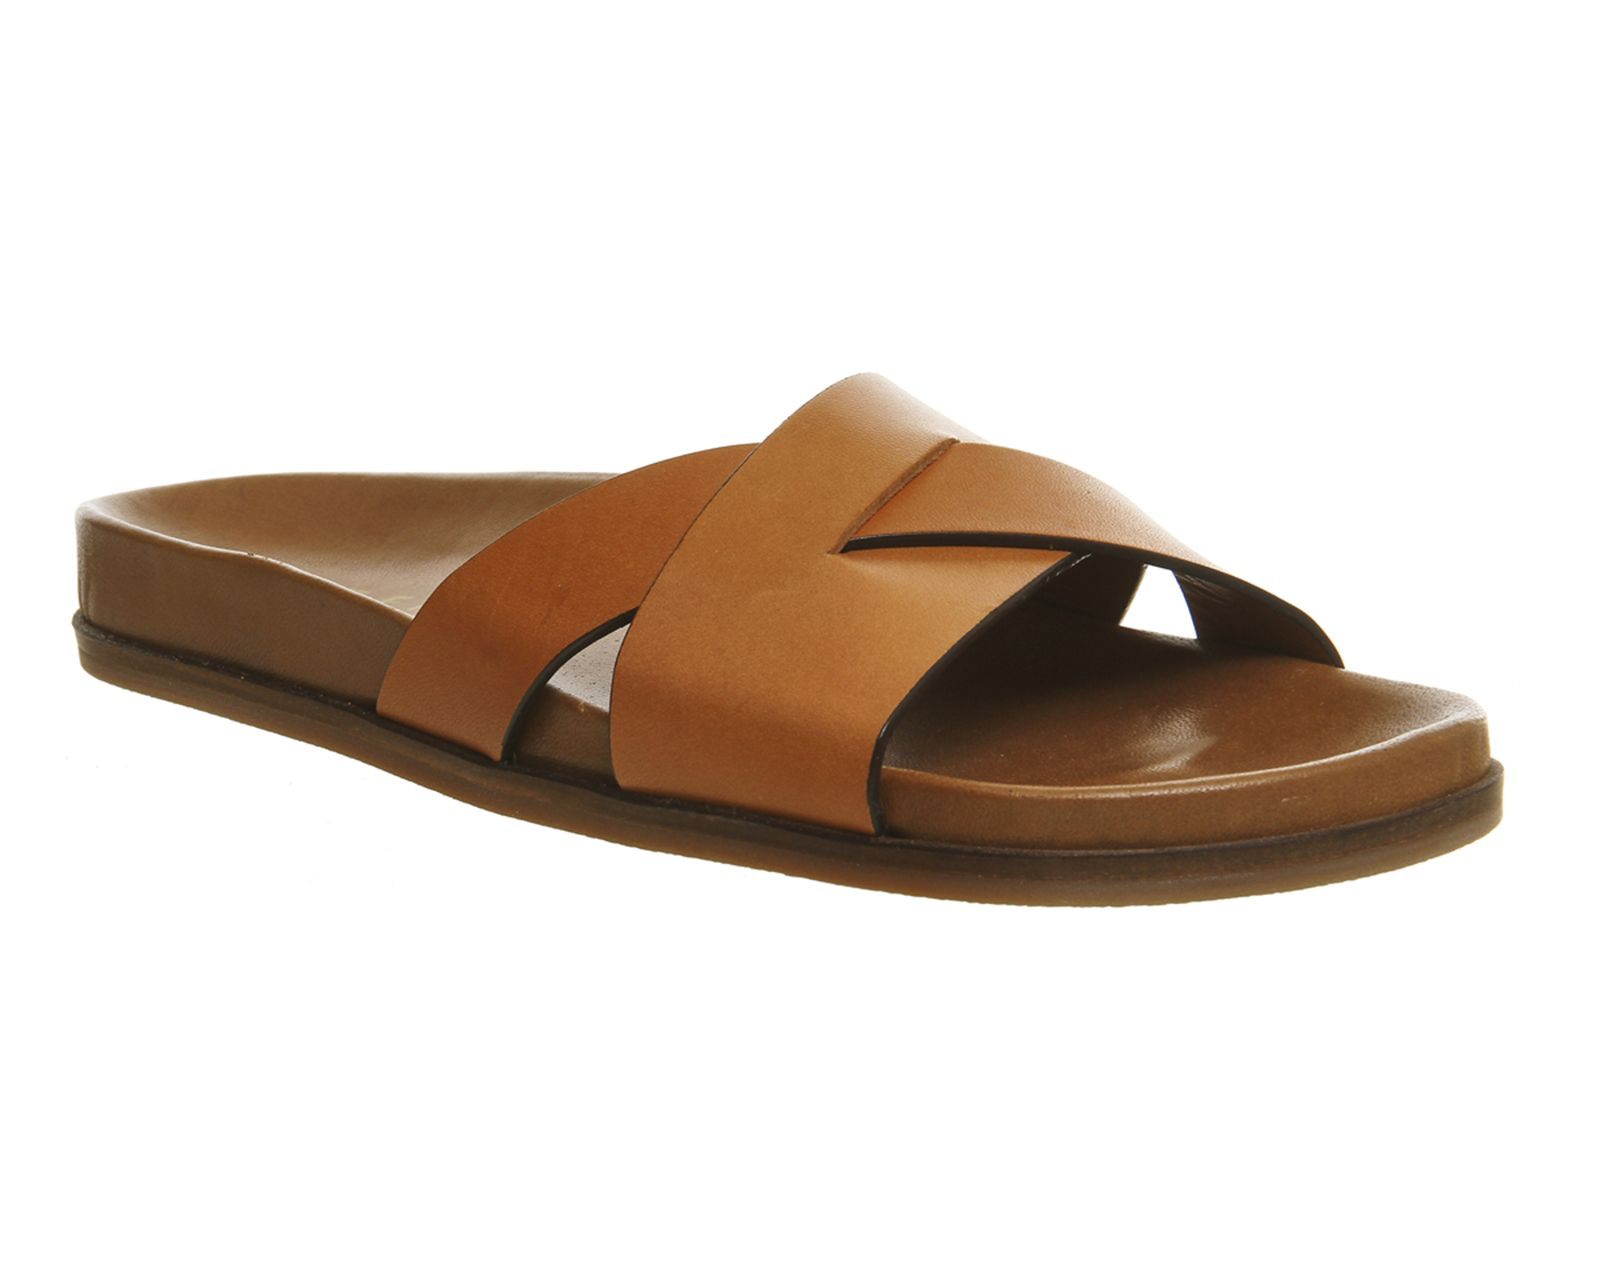 Buy Tan Leather Office Basil Clean Footbed Sandals from OFFICE.co.uk.